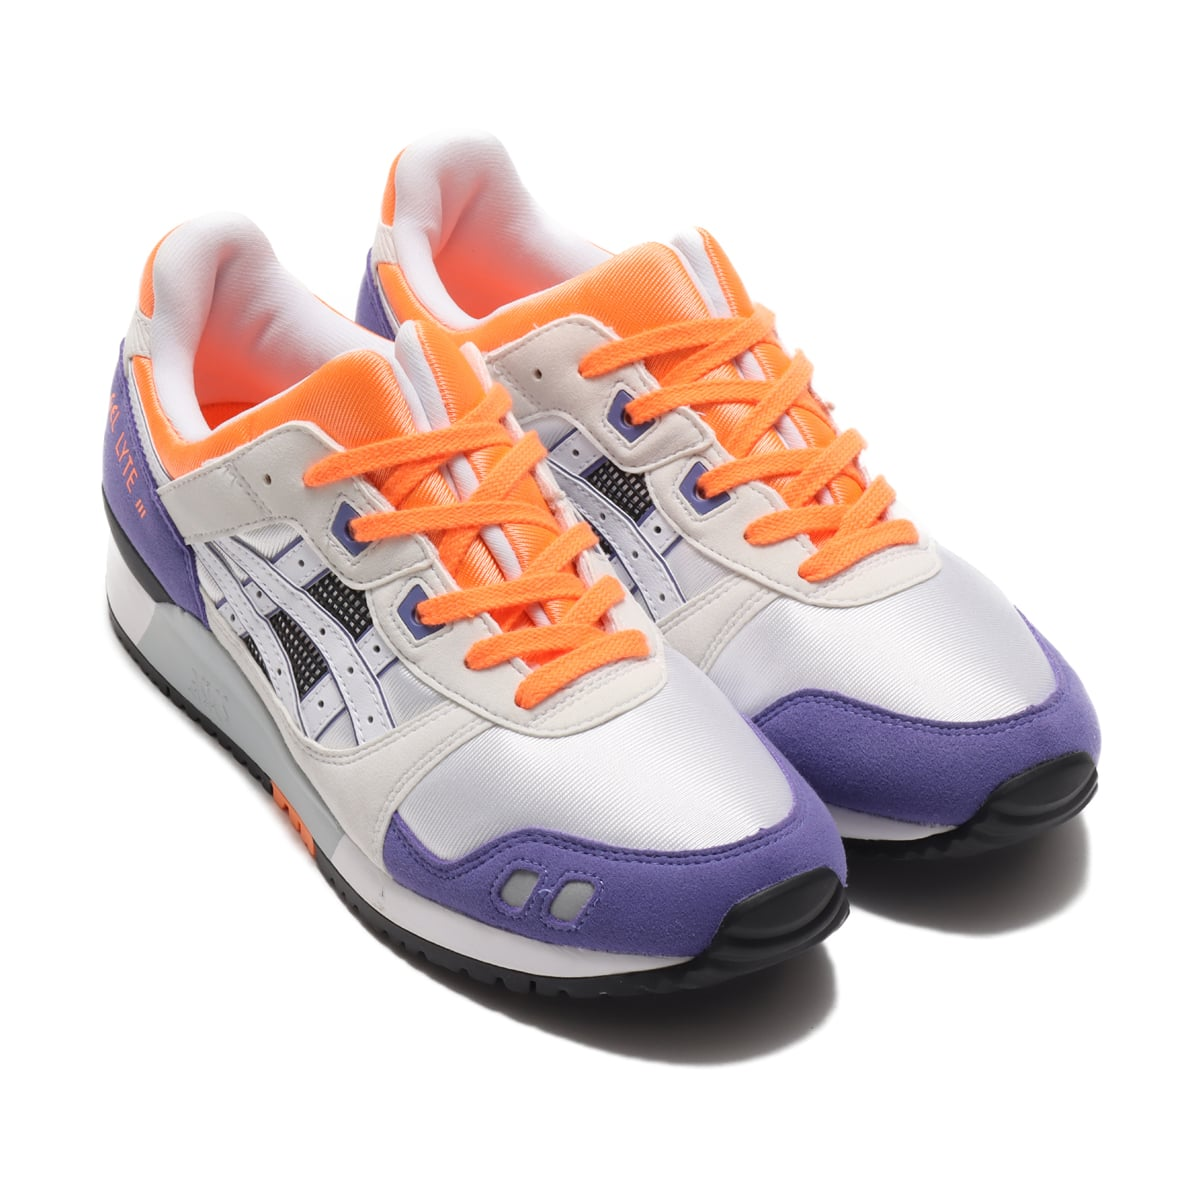 asics GEL-LYTE III OG W/O 20FW-I_photo_large